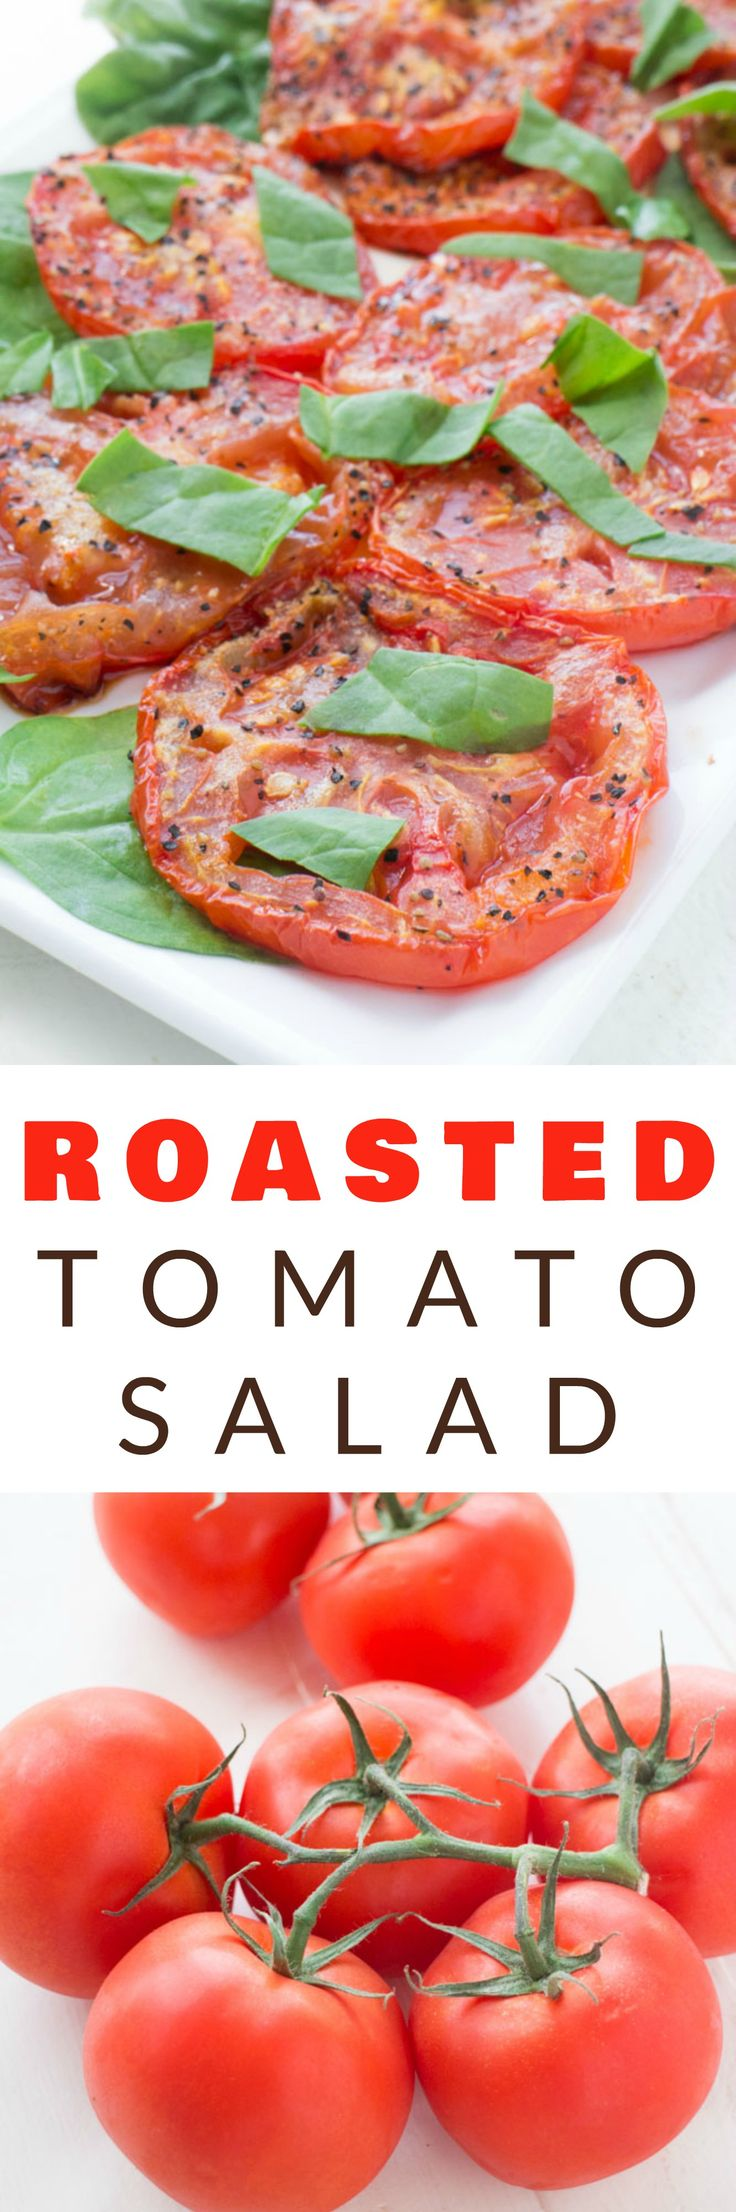 HEALTHY, SIMPLE Roasted Tomato Salad recipe that is a perfect way to enjoy fresh Summer tomatoes!  Fresh tomatoes are roasted with olive oil for 25 minutes to create a delicious salad!  You can use any type of tomatoes - including cherry and heirloom!